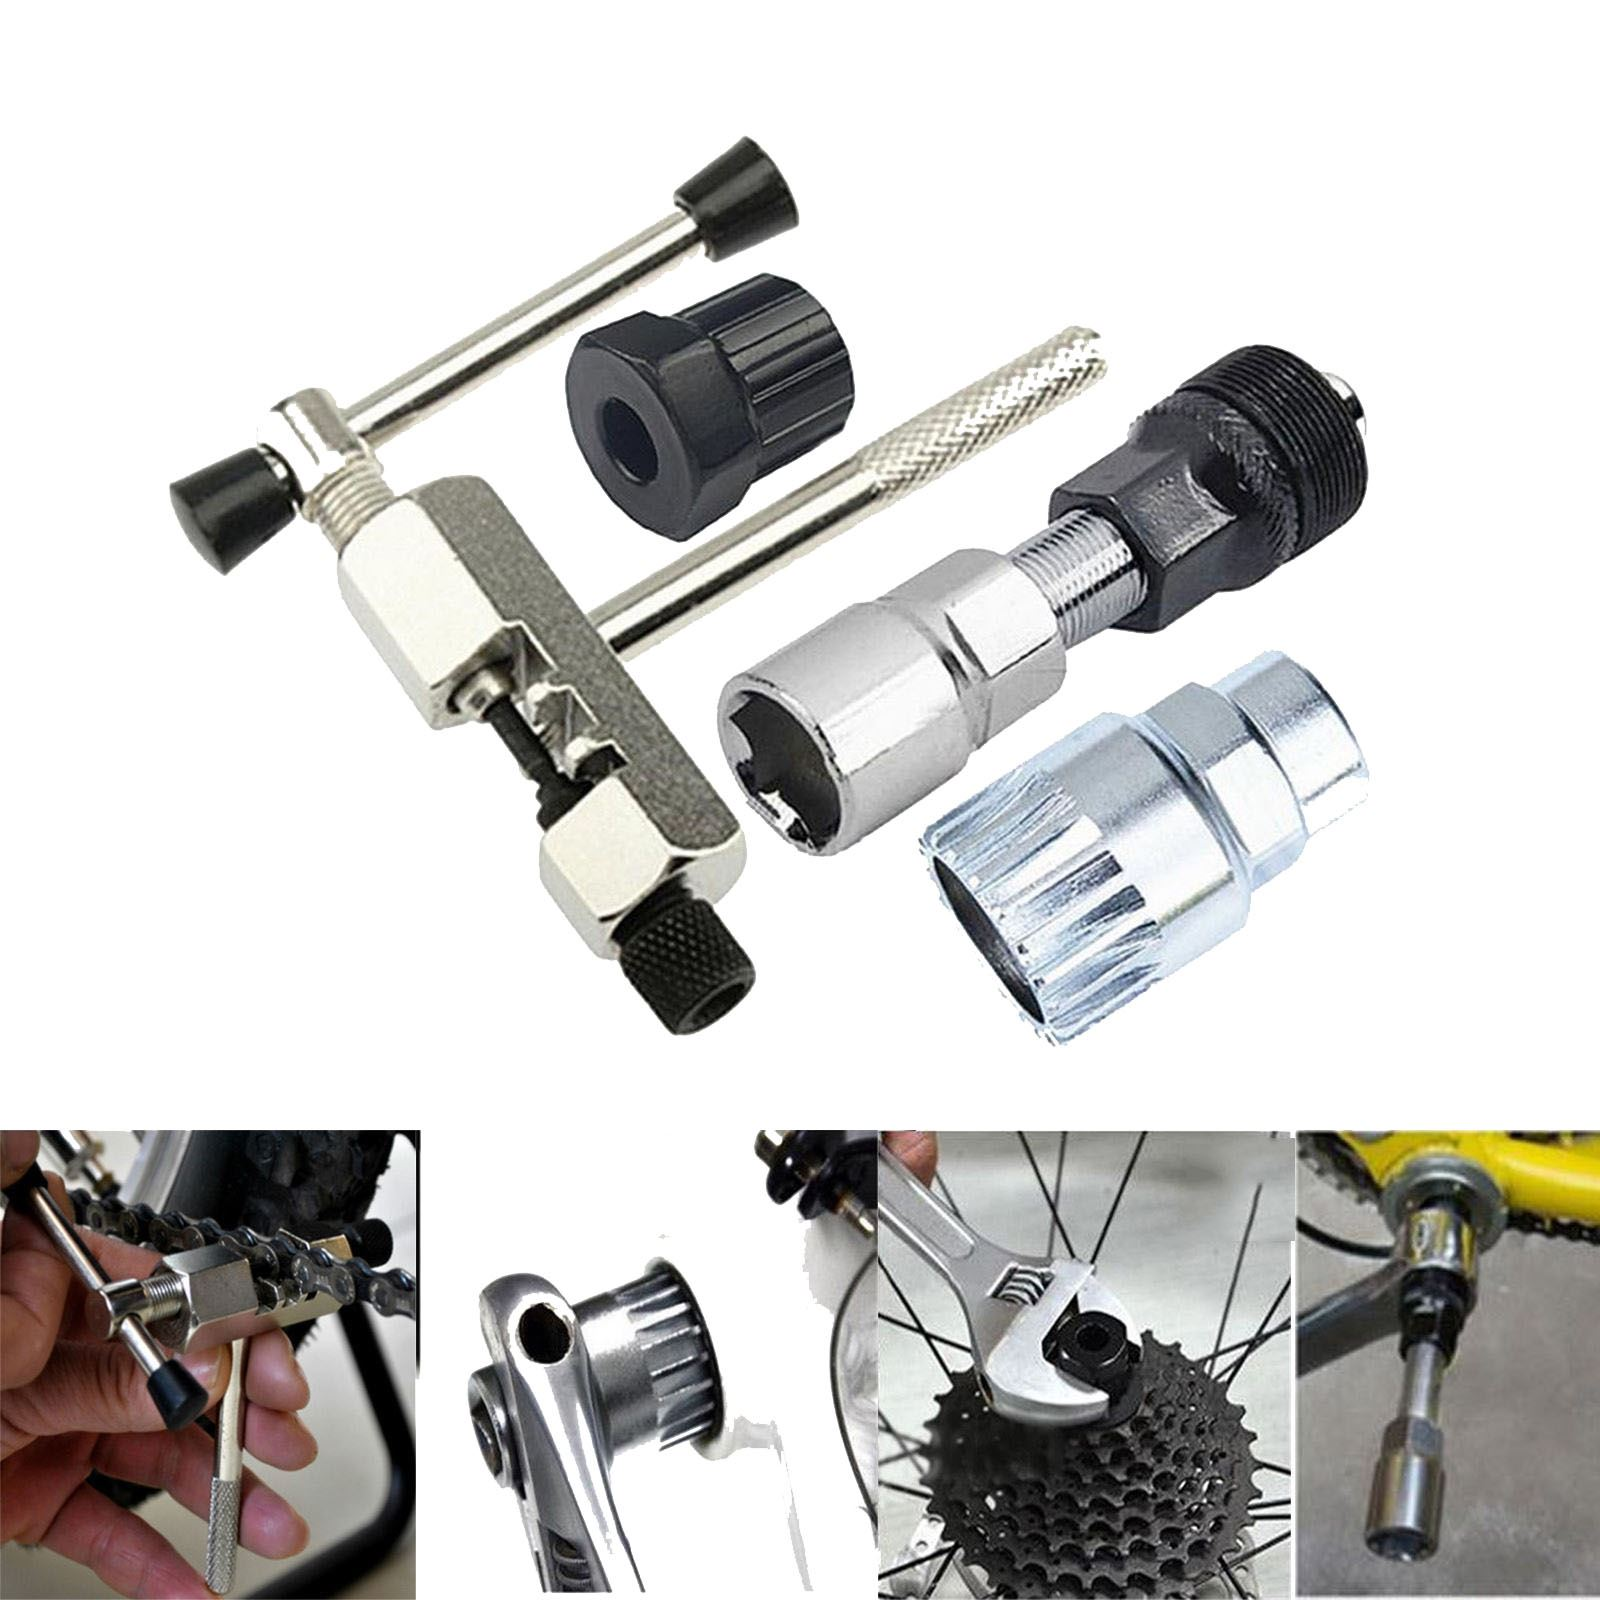 1Pc new Bike Cycling Crank Wheel Puller Pedal Remover Repair Tool Square Tapered